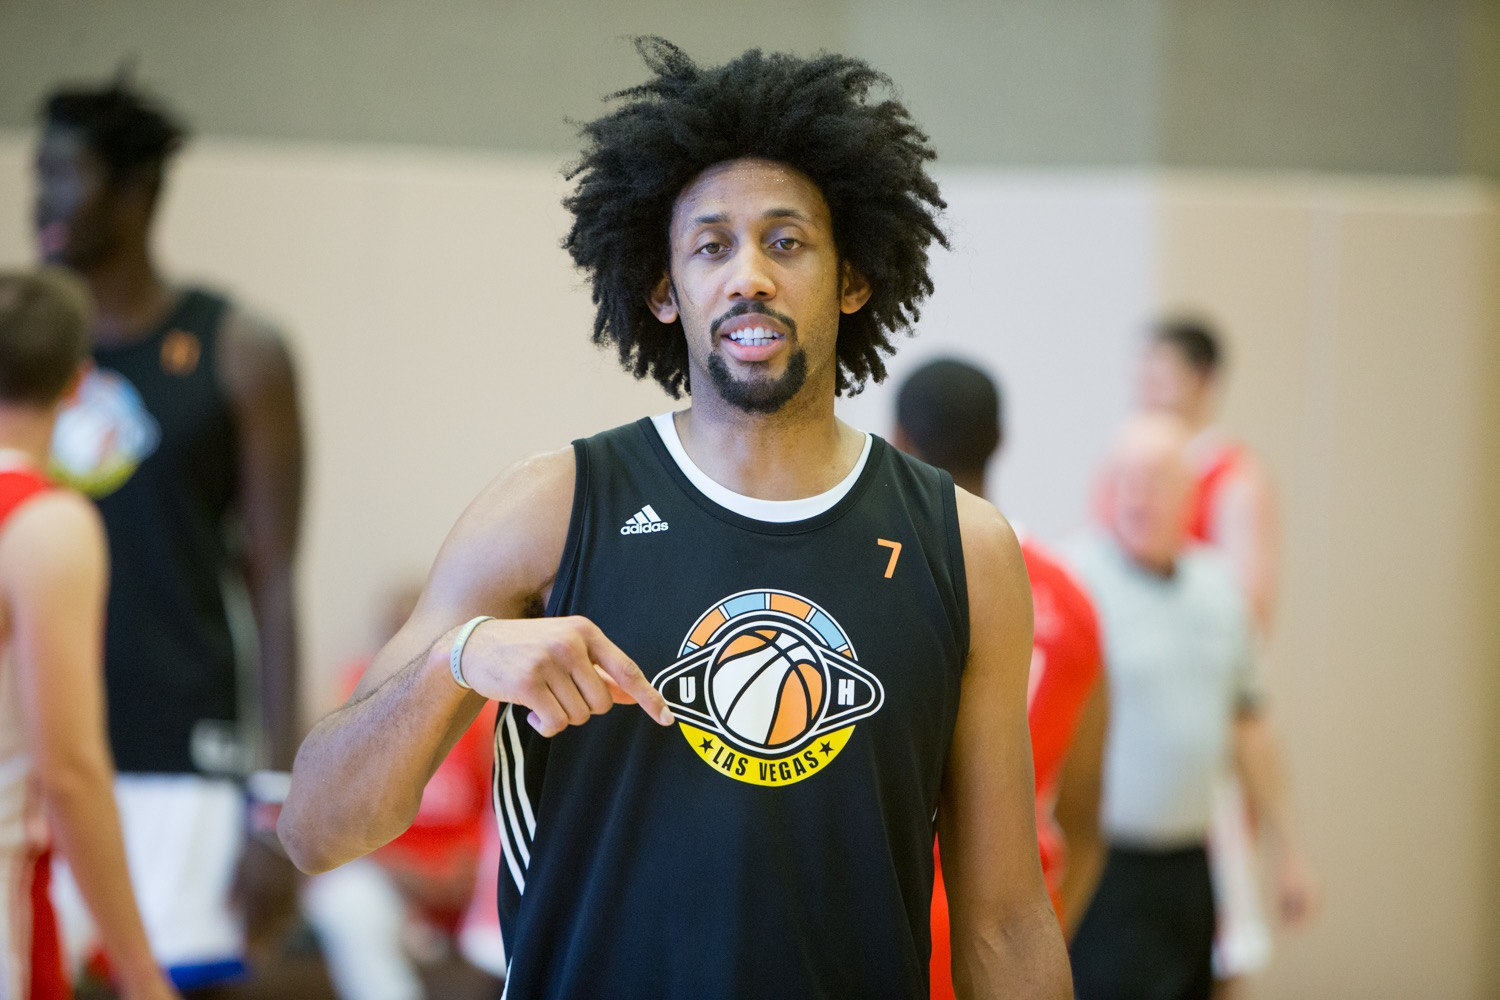 Josh Childress led runner-up Reincarnated (CA) to a 4-2 record at last weekend's tournament.